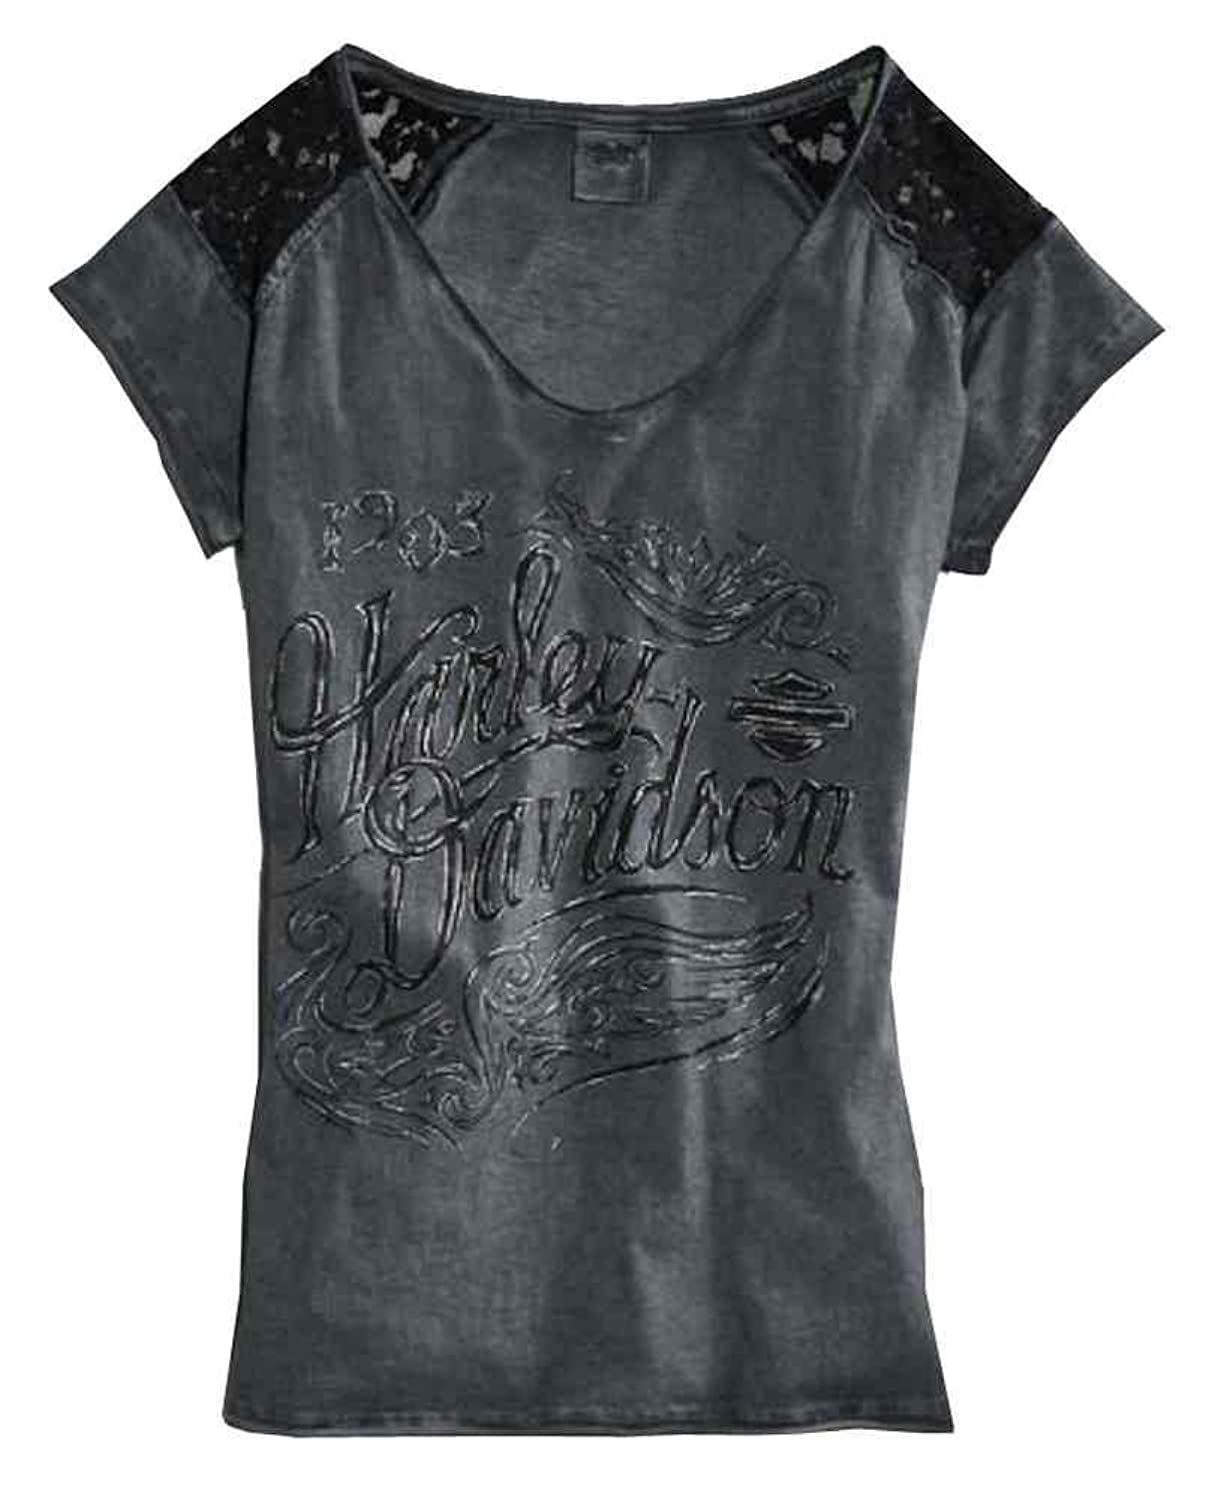 Harley-Davidson Women's V-Neck Short Sleeve Tee, Lace Accent, Gray 96070-16VW